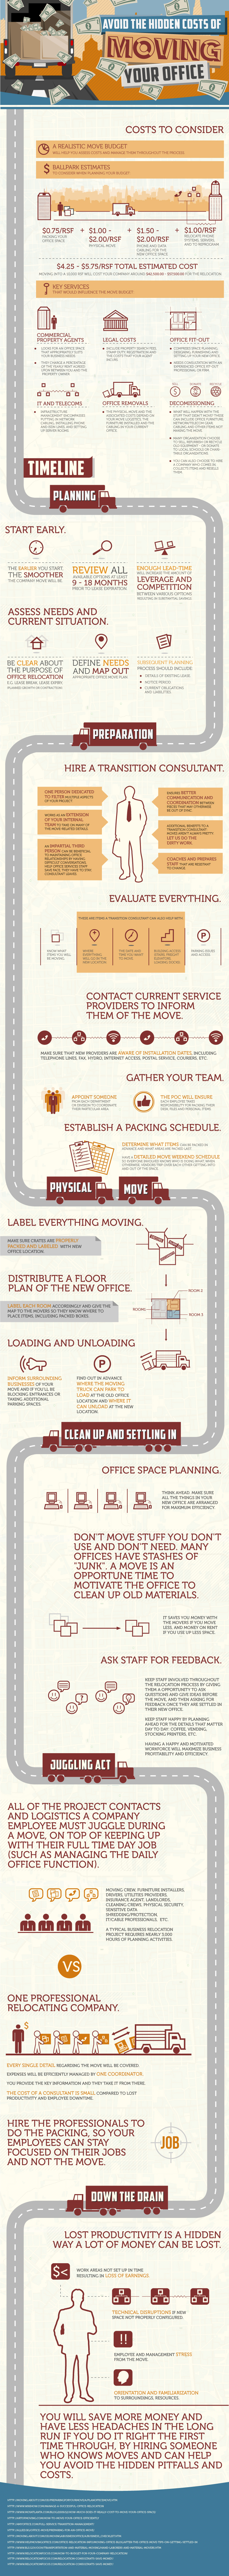 Office-Moving-Checklist